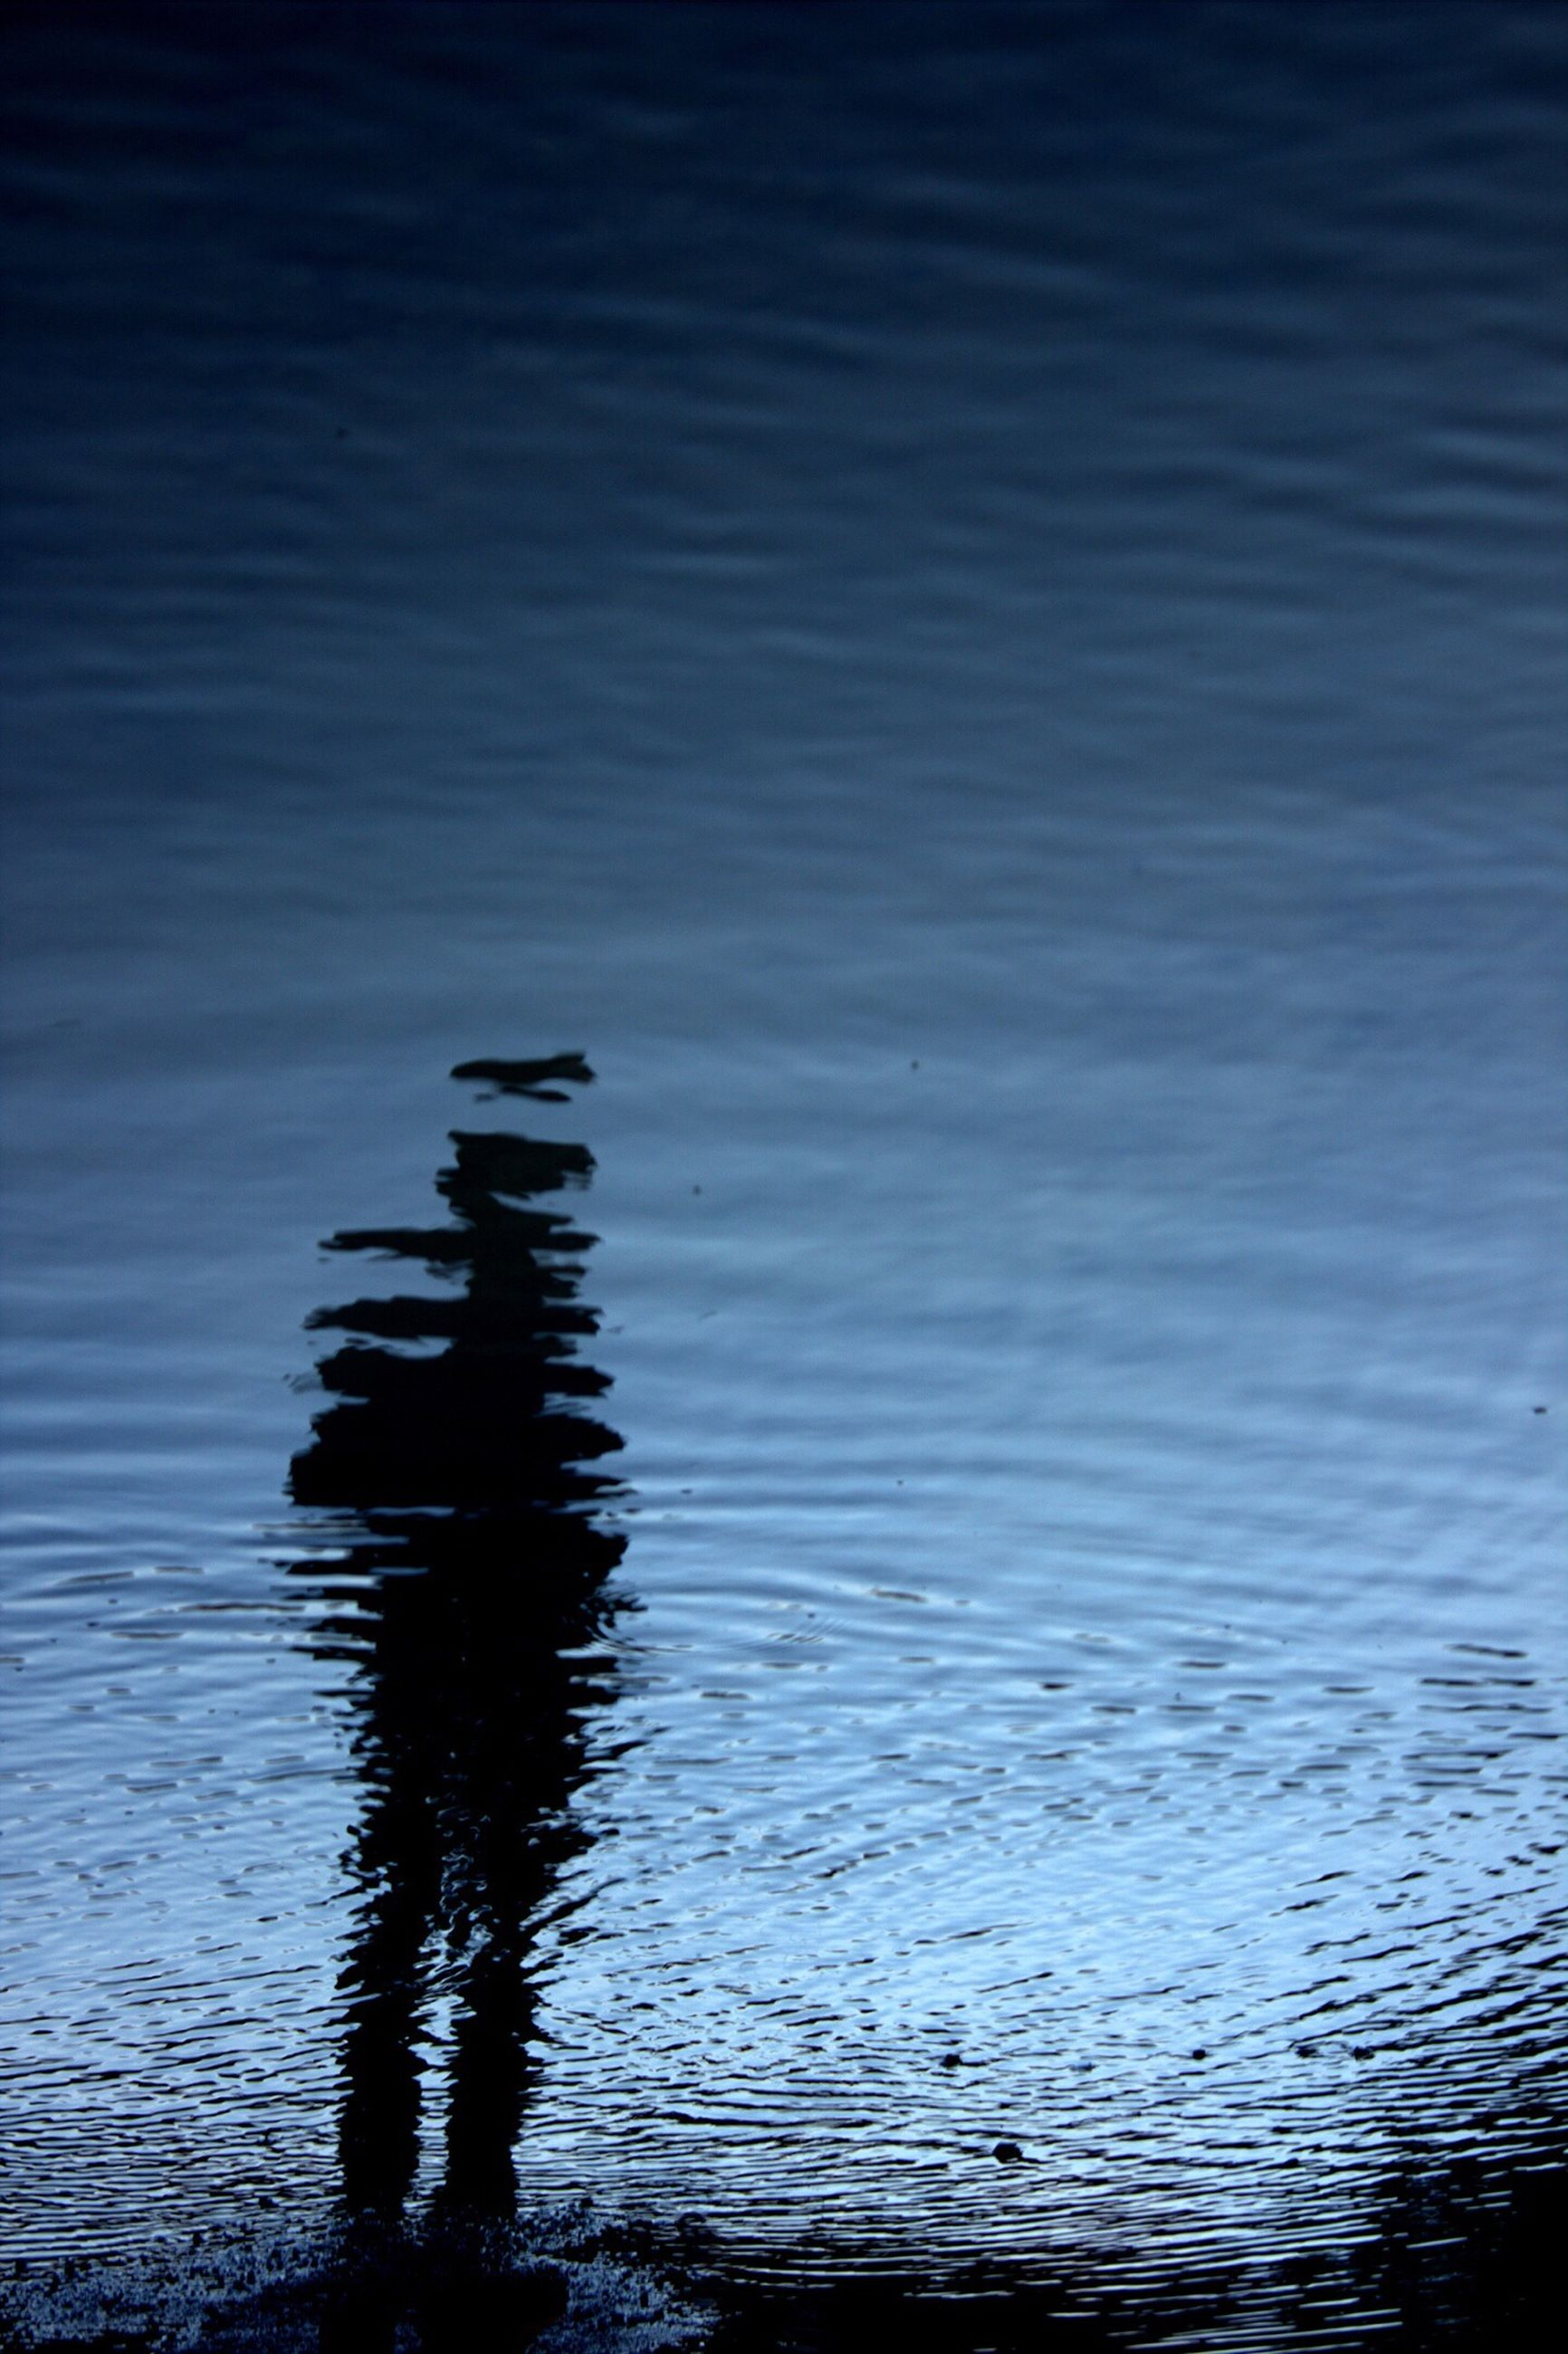 water, waterfront, rippled, reflection, sea, tranquility, nature, tranquil scene, lake, beauty in nature, silhouette, scenics, outdoors, no people, blue, idyllic, day, sky, dusk, sunlight